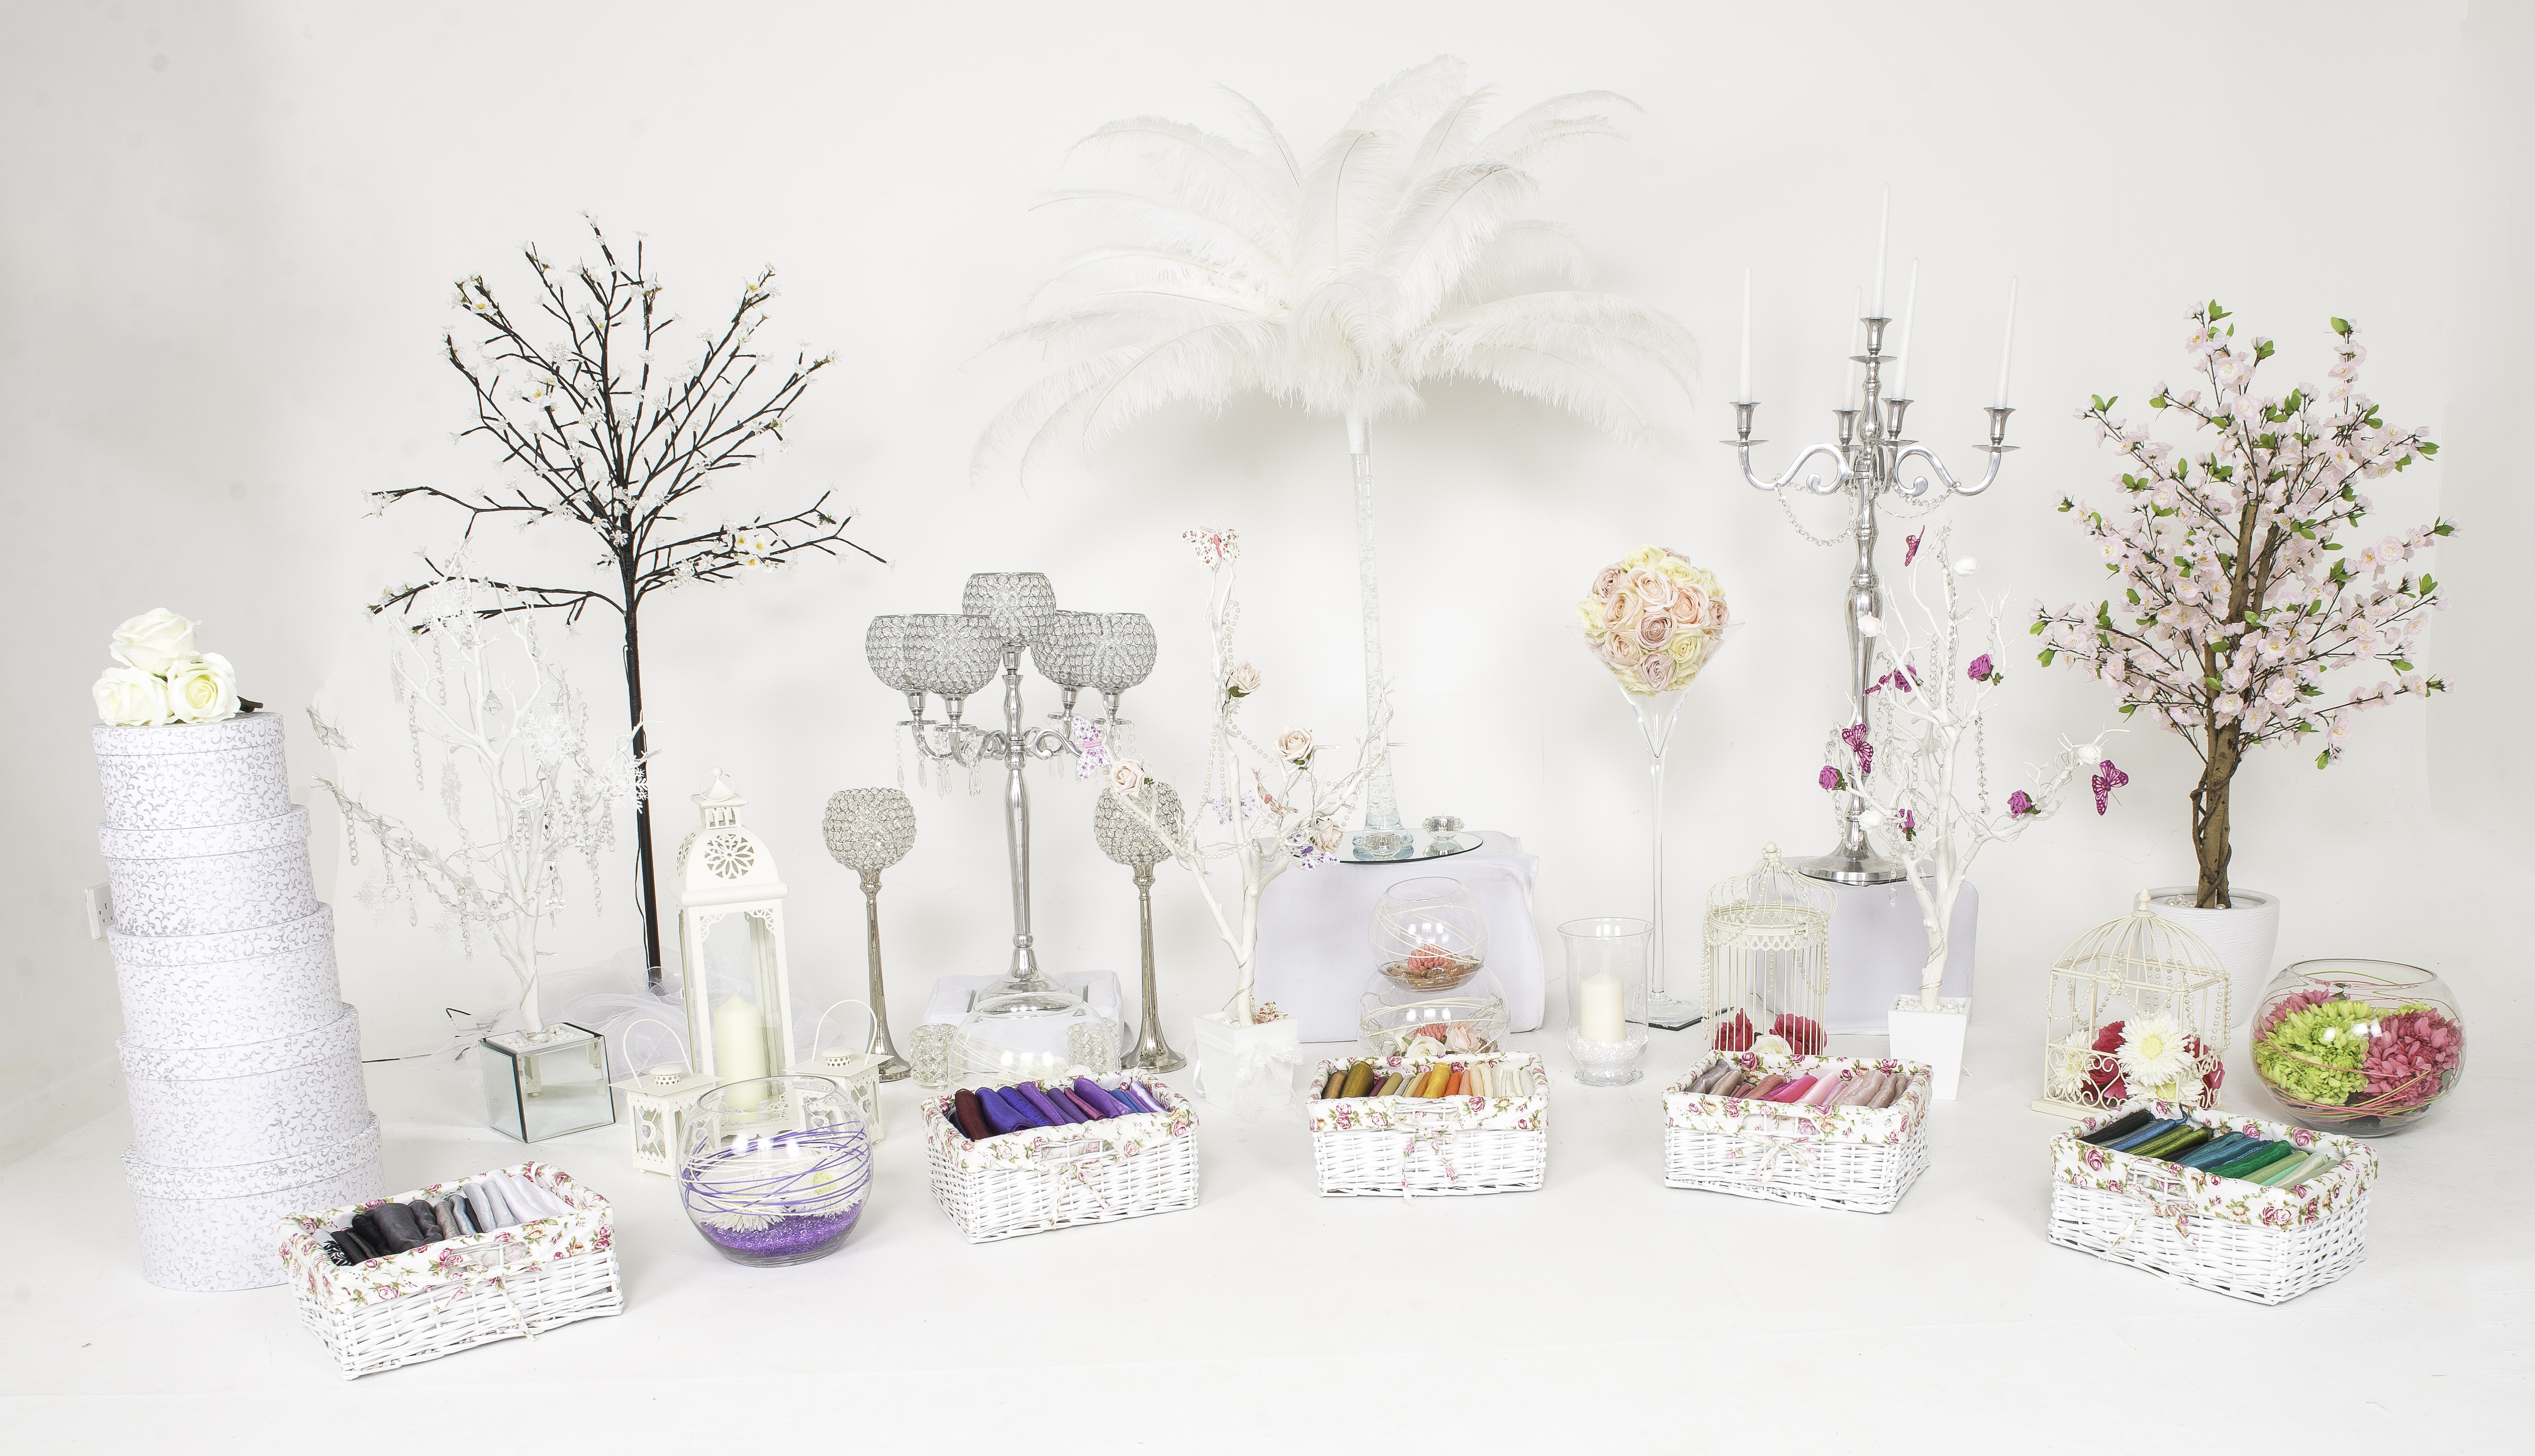 Sophisticated Events wedding centrepeices and styling accessories